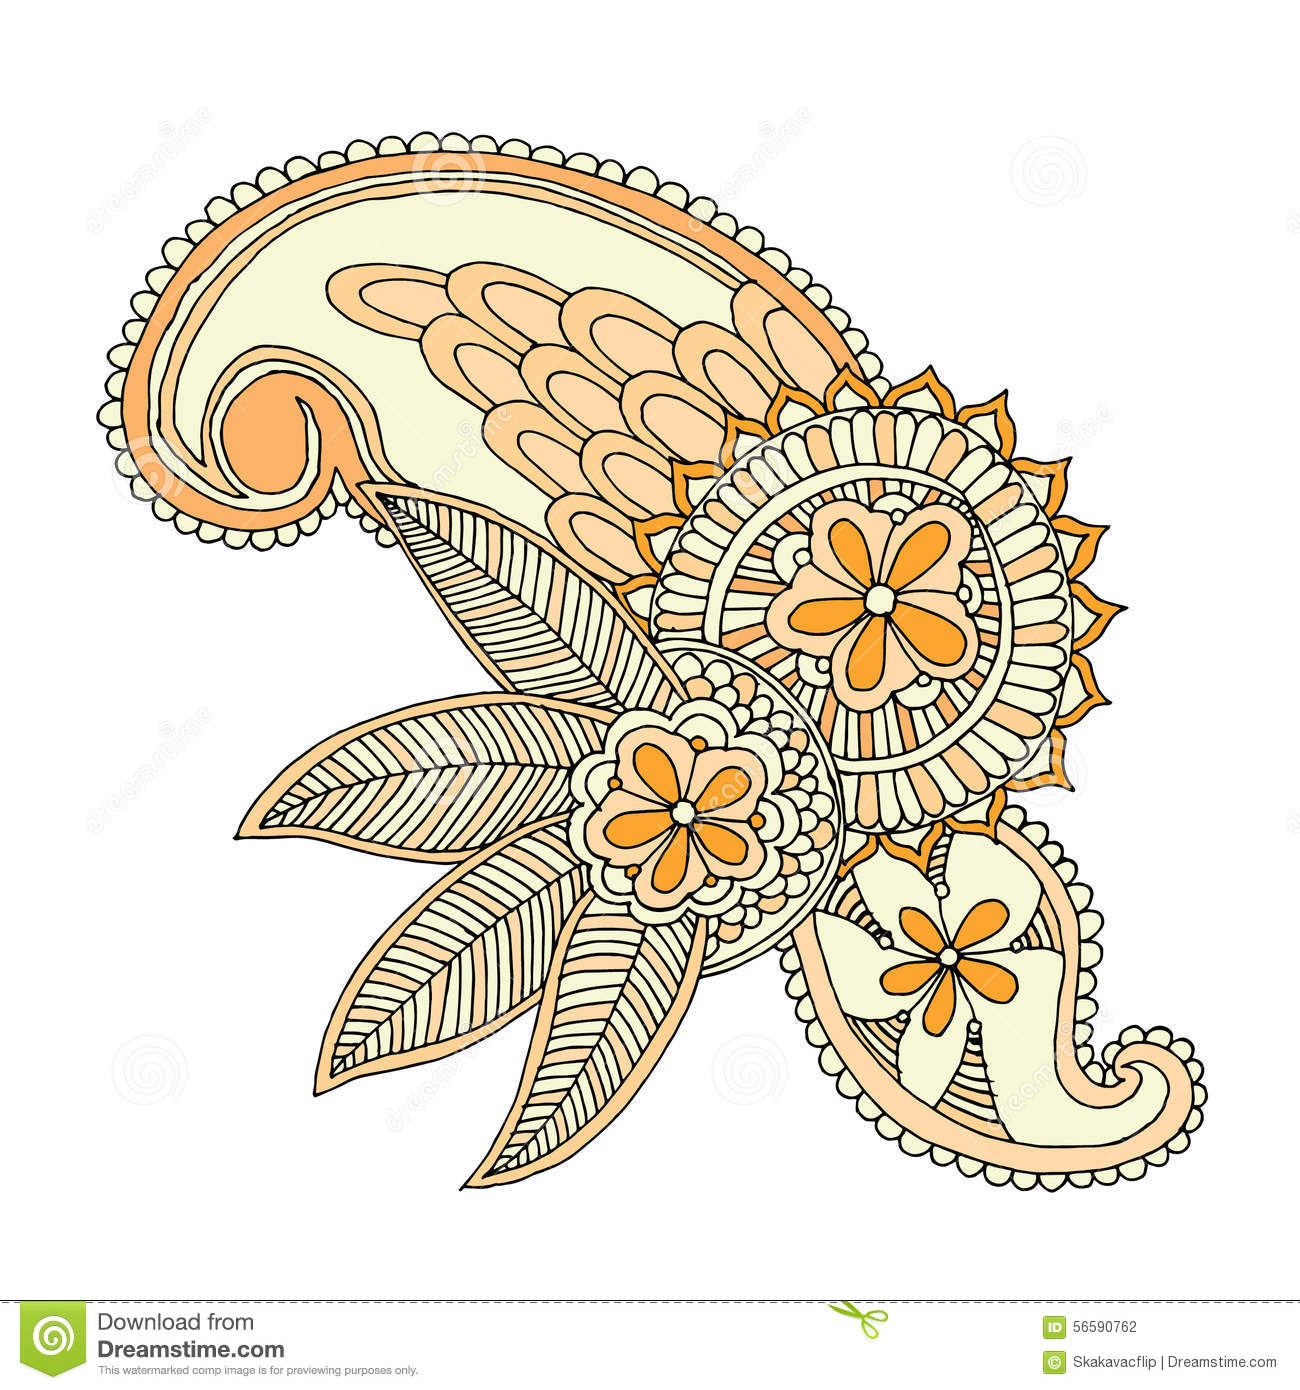 Line Art Embroidery : Neckline embroidery design stock vector illustration of